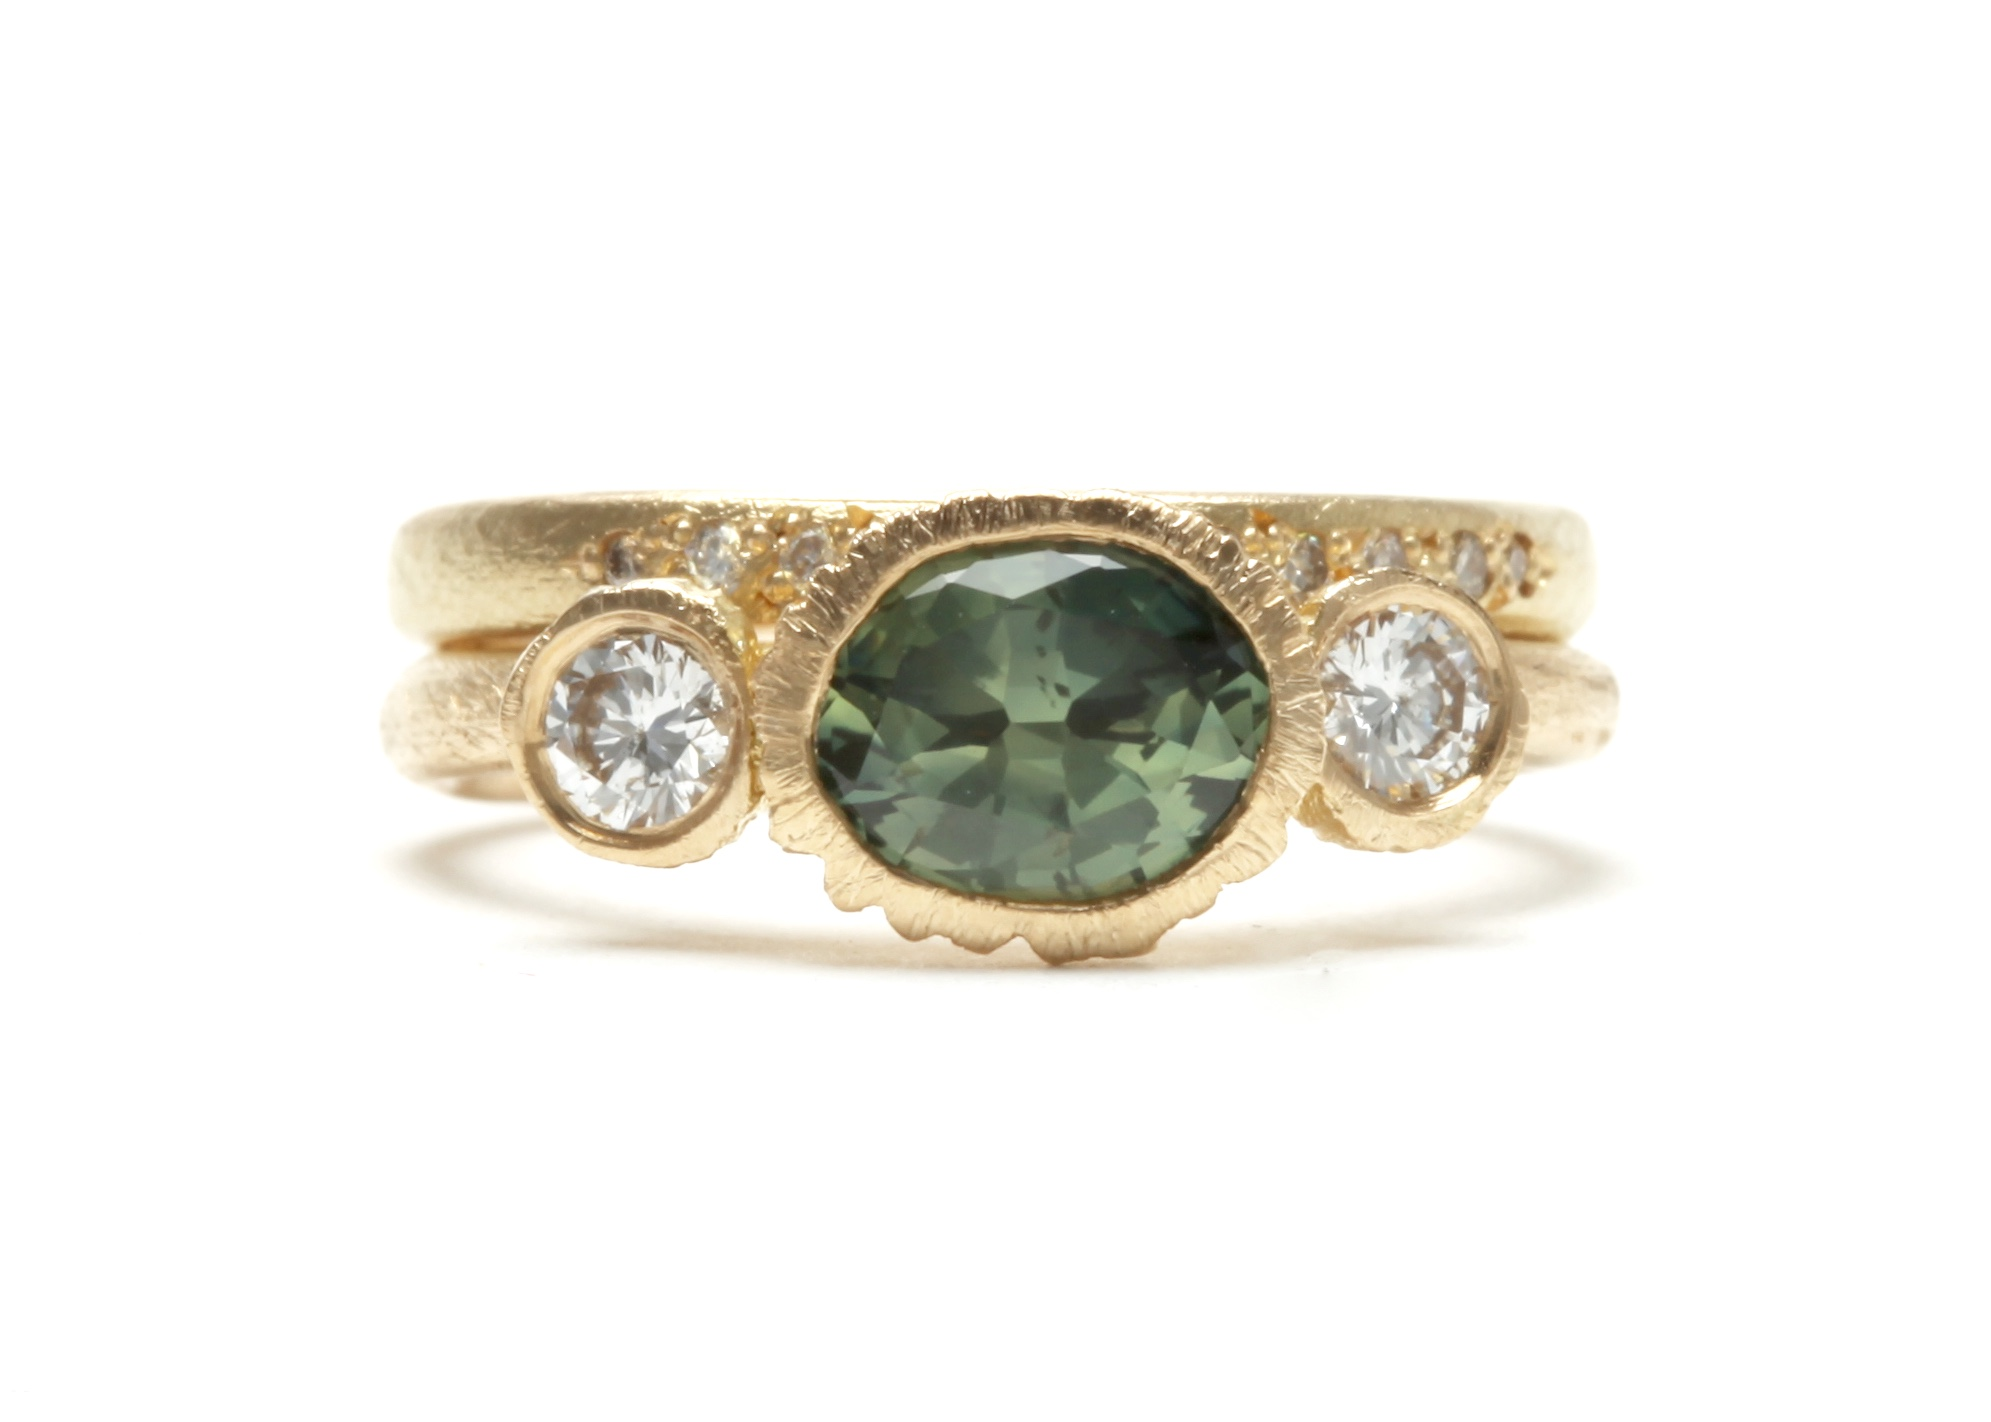 Big Rock Pool Ring in 18 carat yellow gold with Australian (NSW) Parti Sapphire and white diamonds, available through  Pieces of Eight.